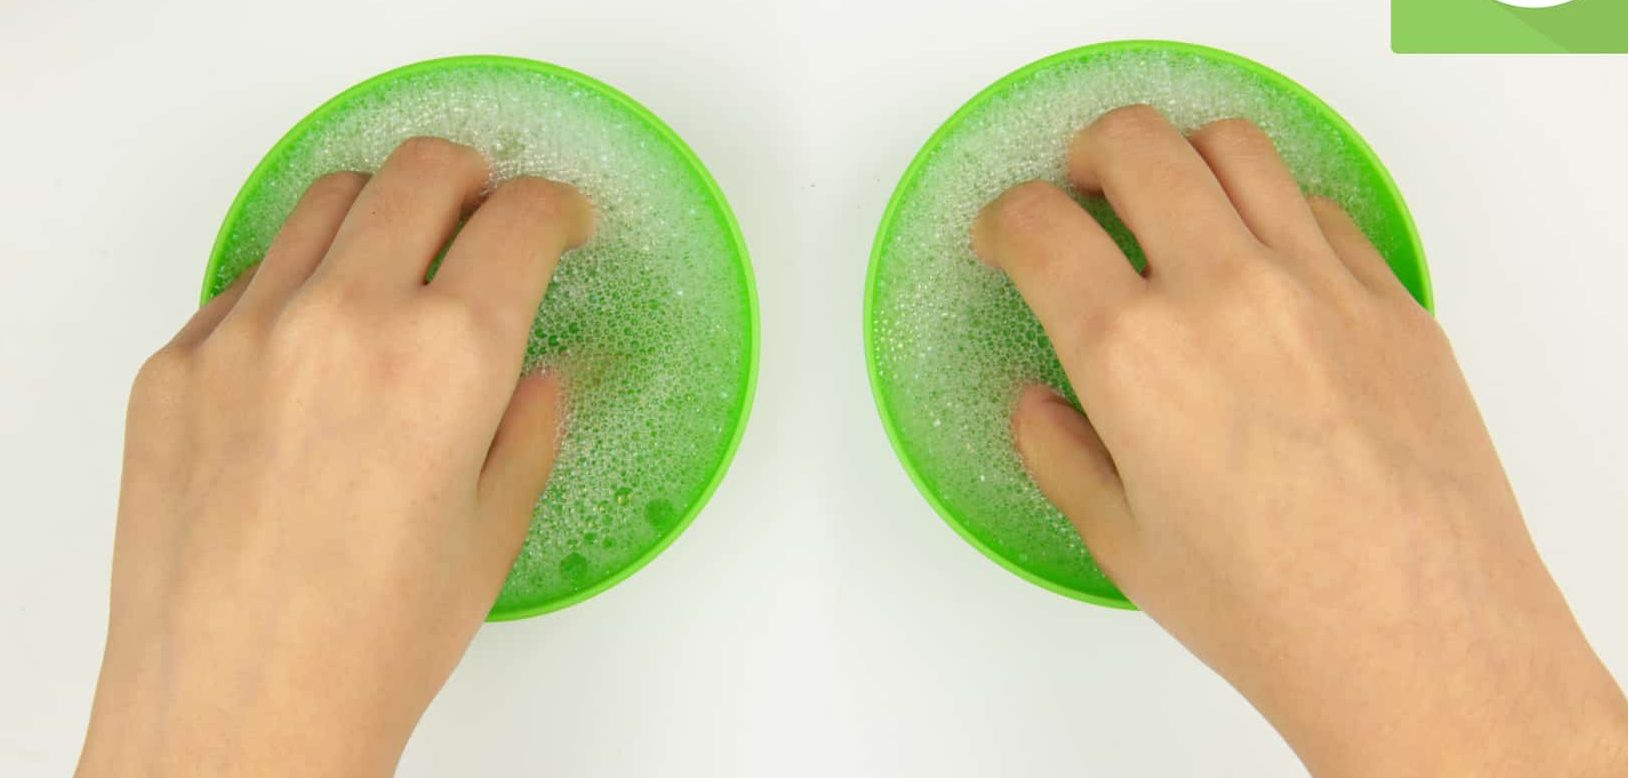 Soak with Hot Water to remove powder nail polish